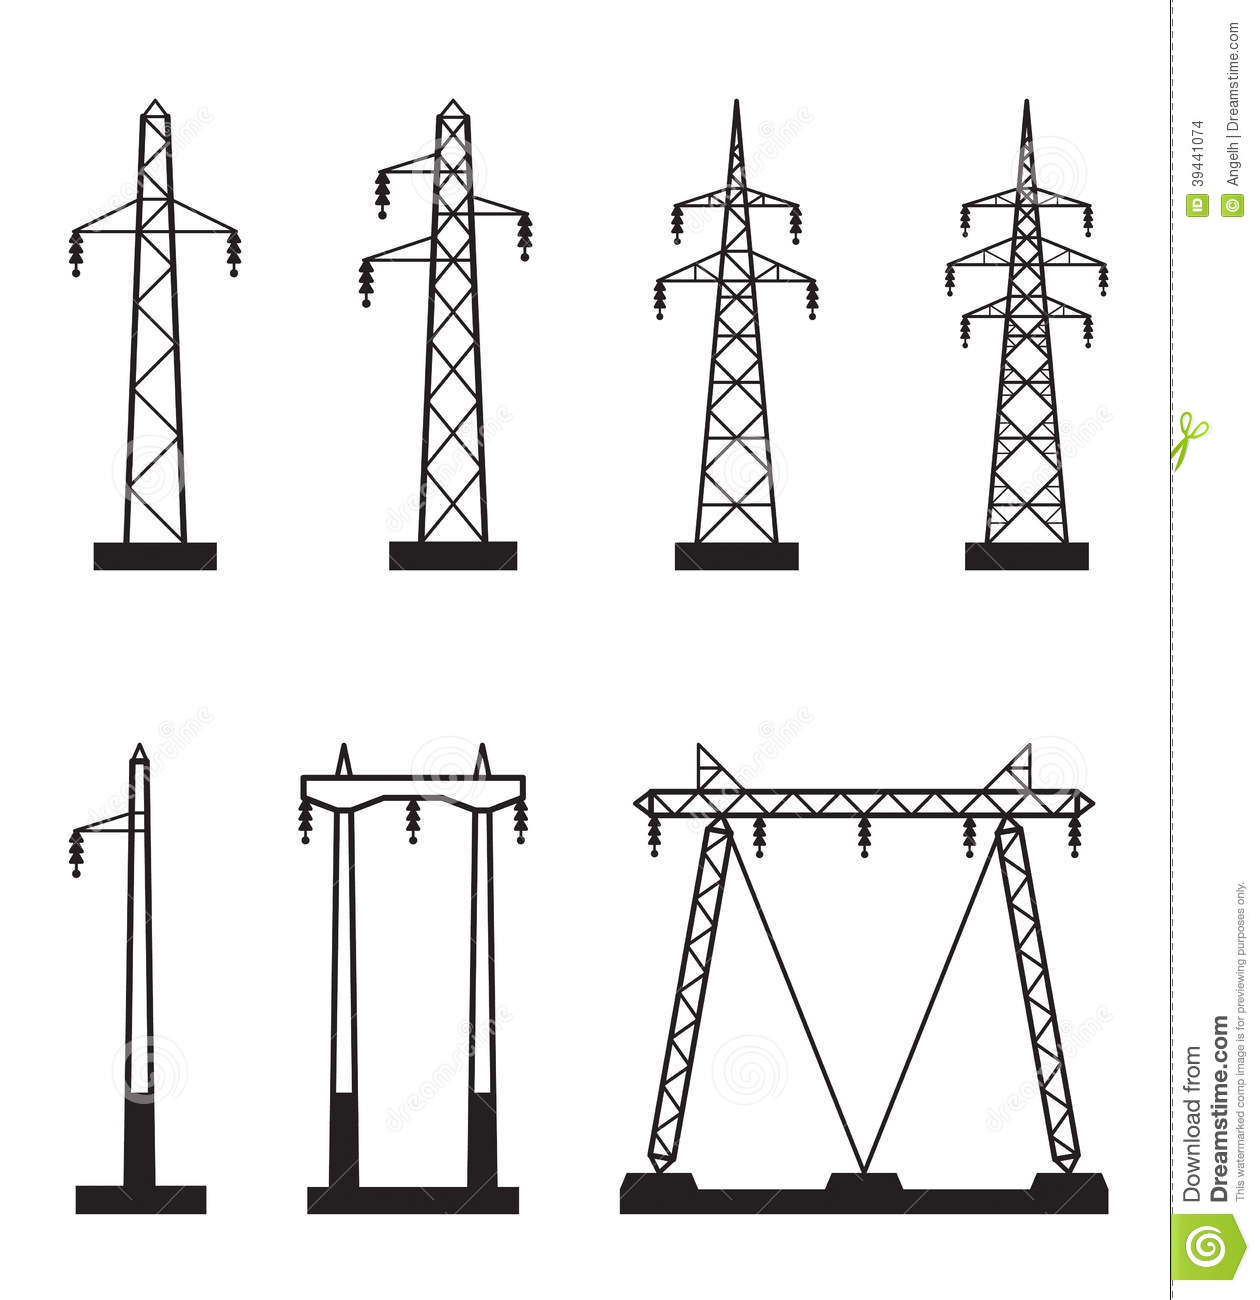 Electrical Transmission Tower Types Stock Vector   Image  39441074